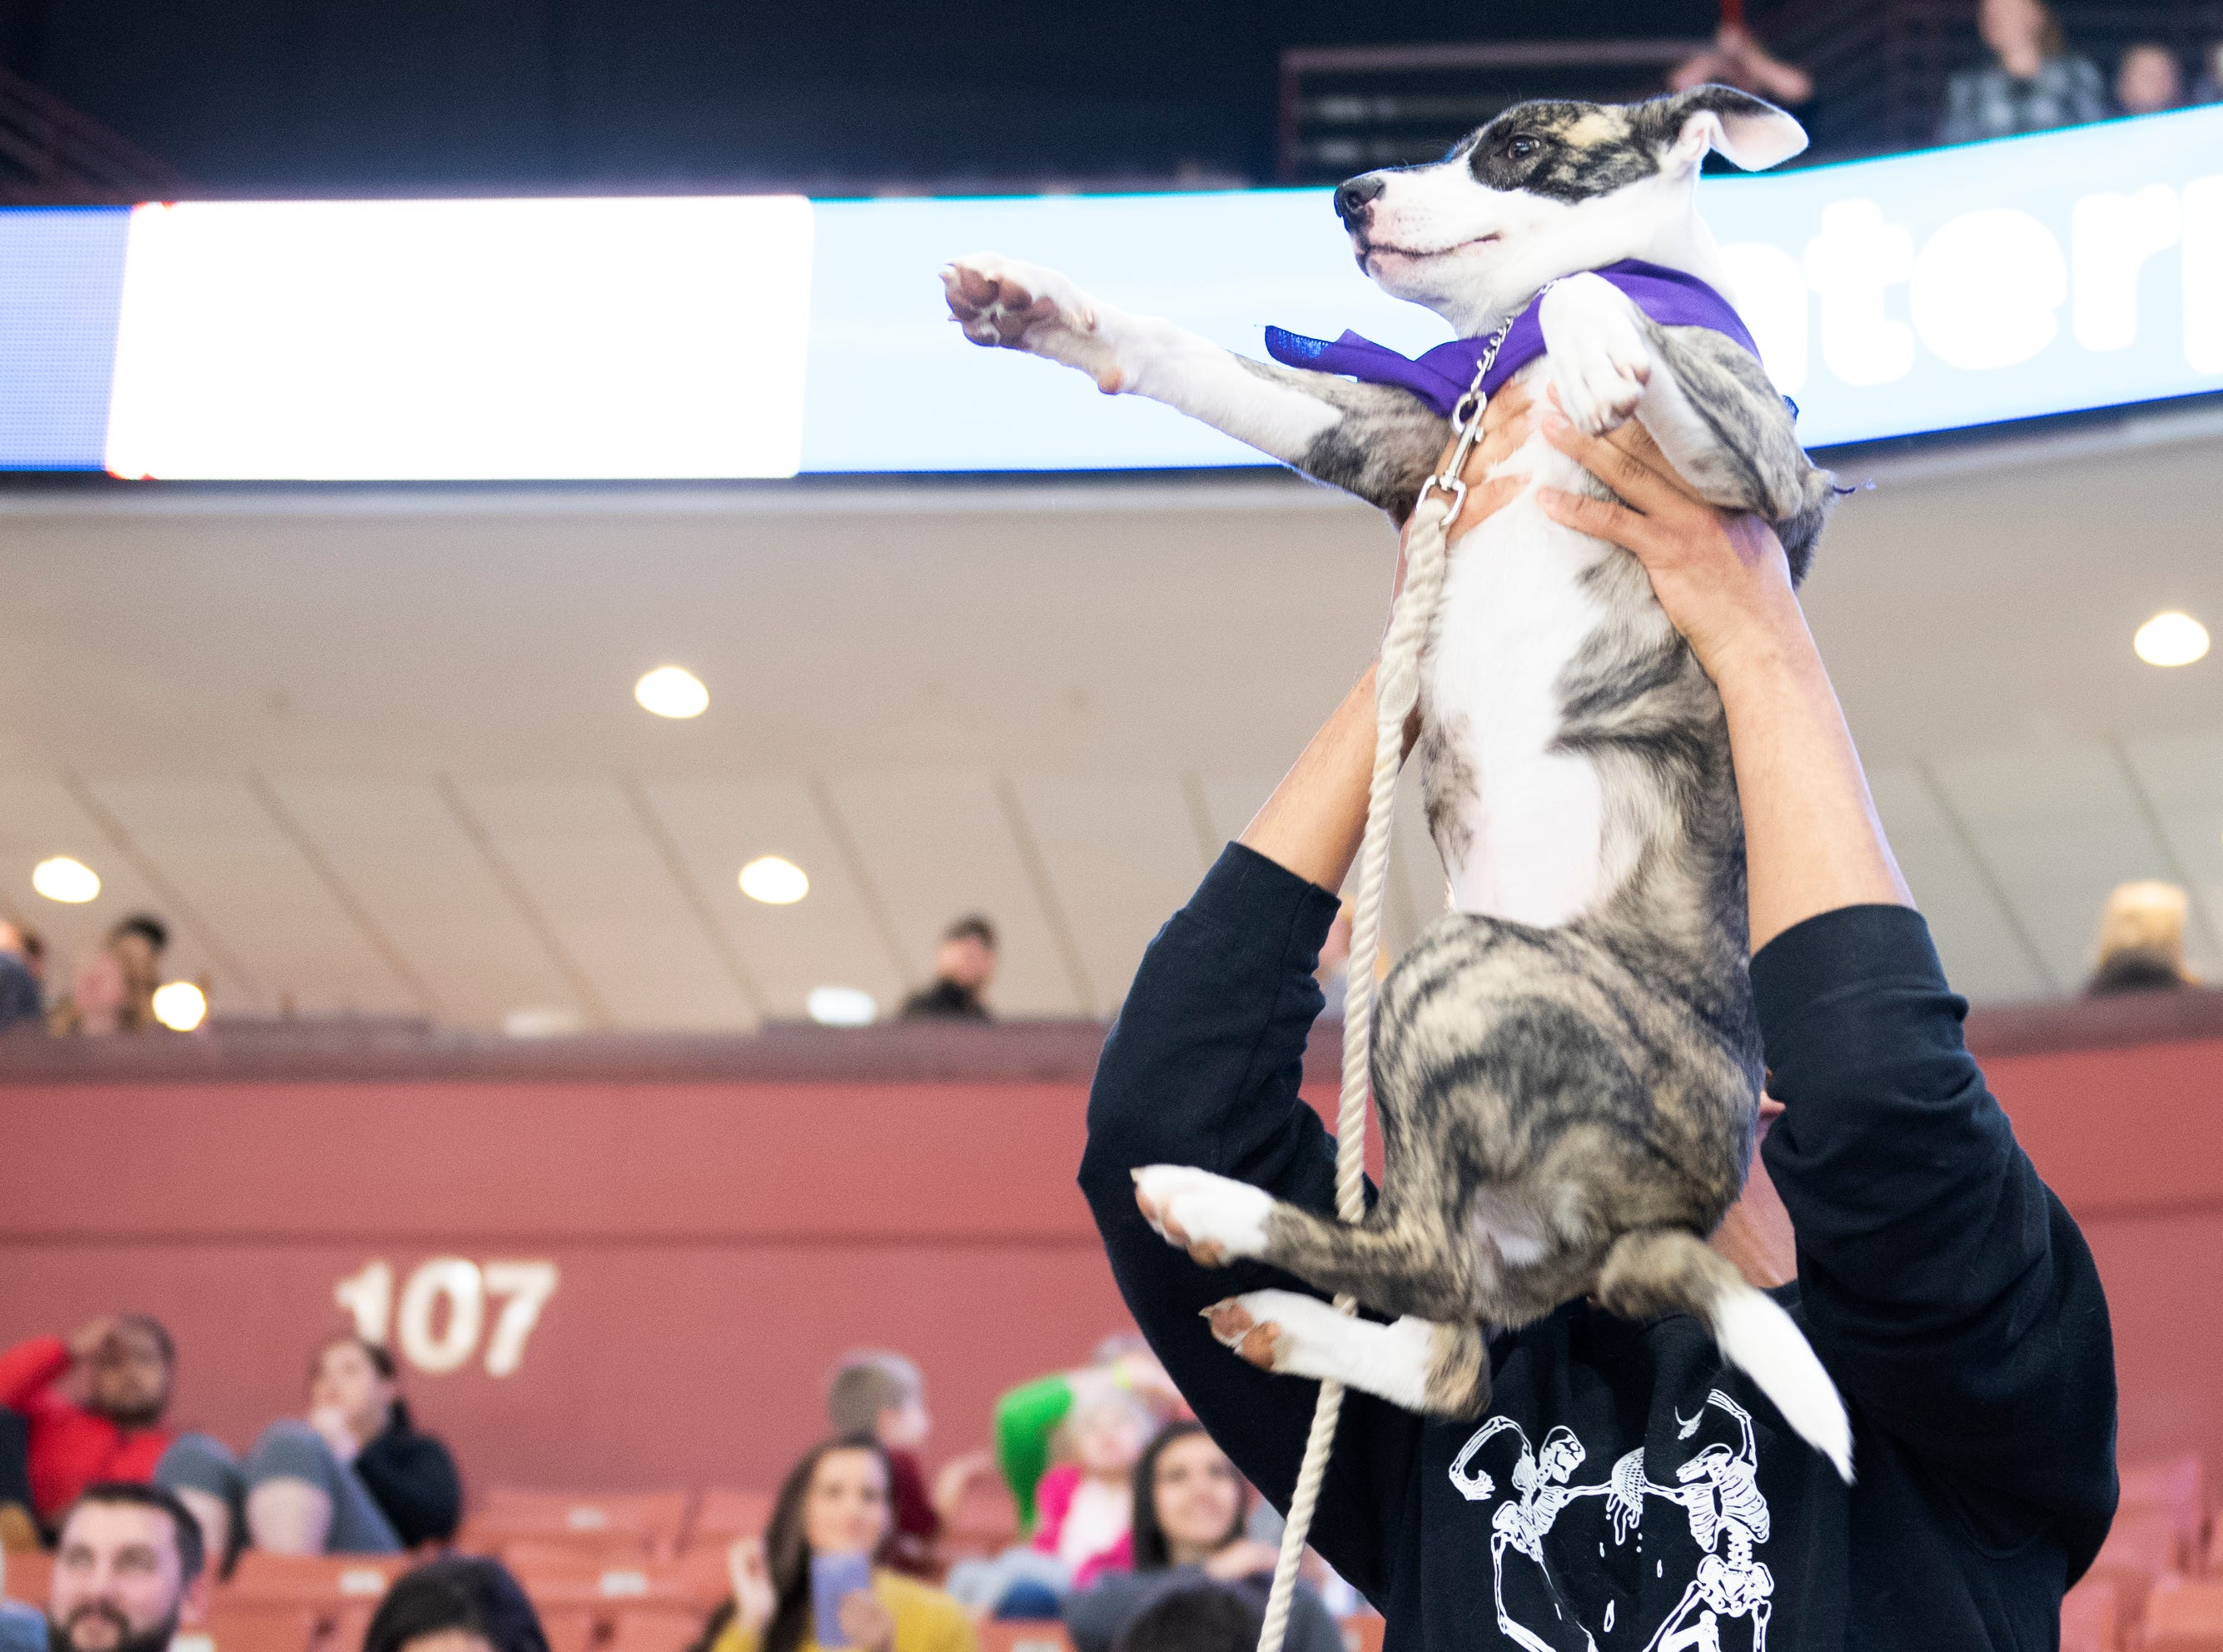 Garrison Thompson holds up Kaya during the Greenville Swamp Rabbits game against the Florida Everblades Saturday, Feb. 2, 2019. Saturday was Pucks N' Paws night at Bon Secours Wellness Arena.